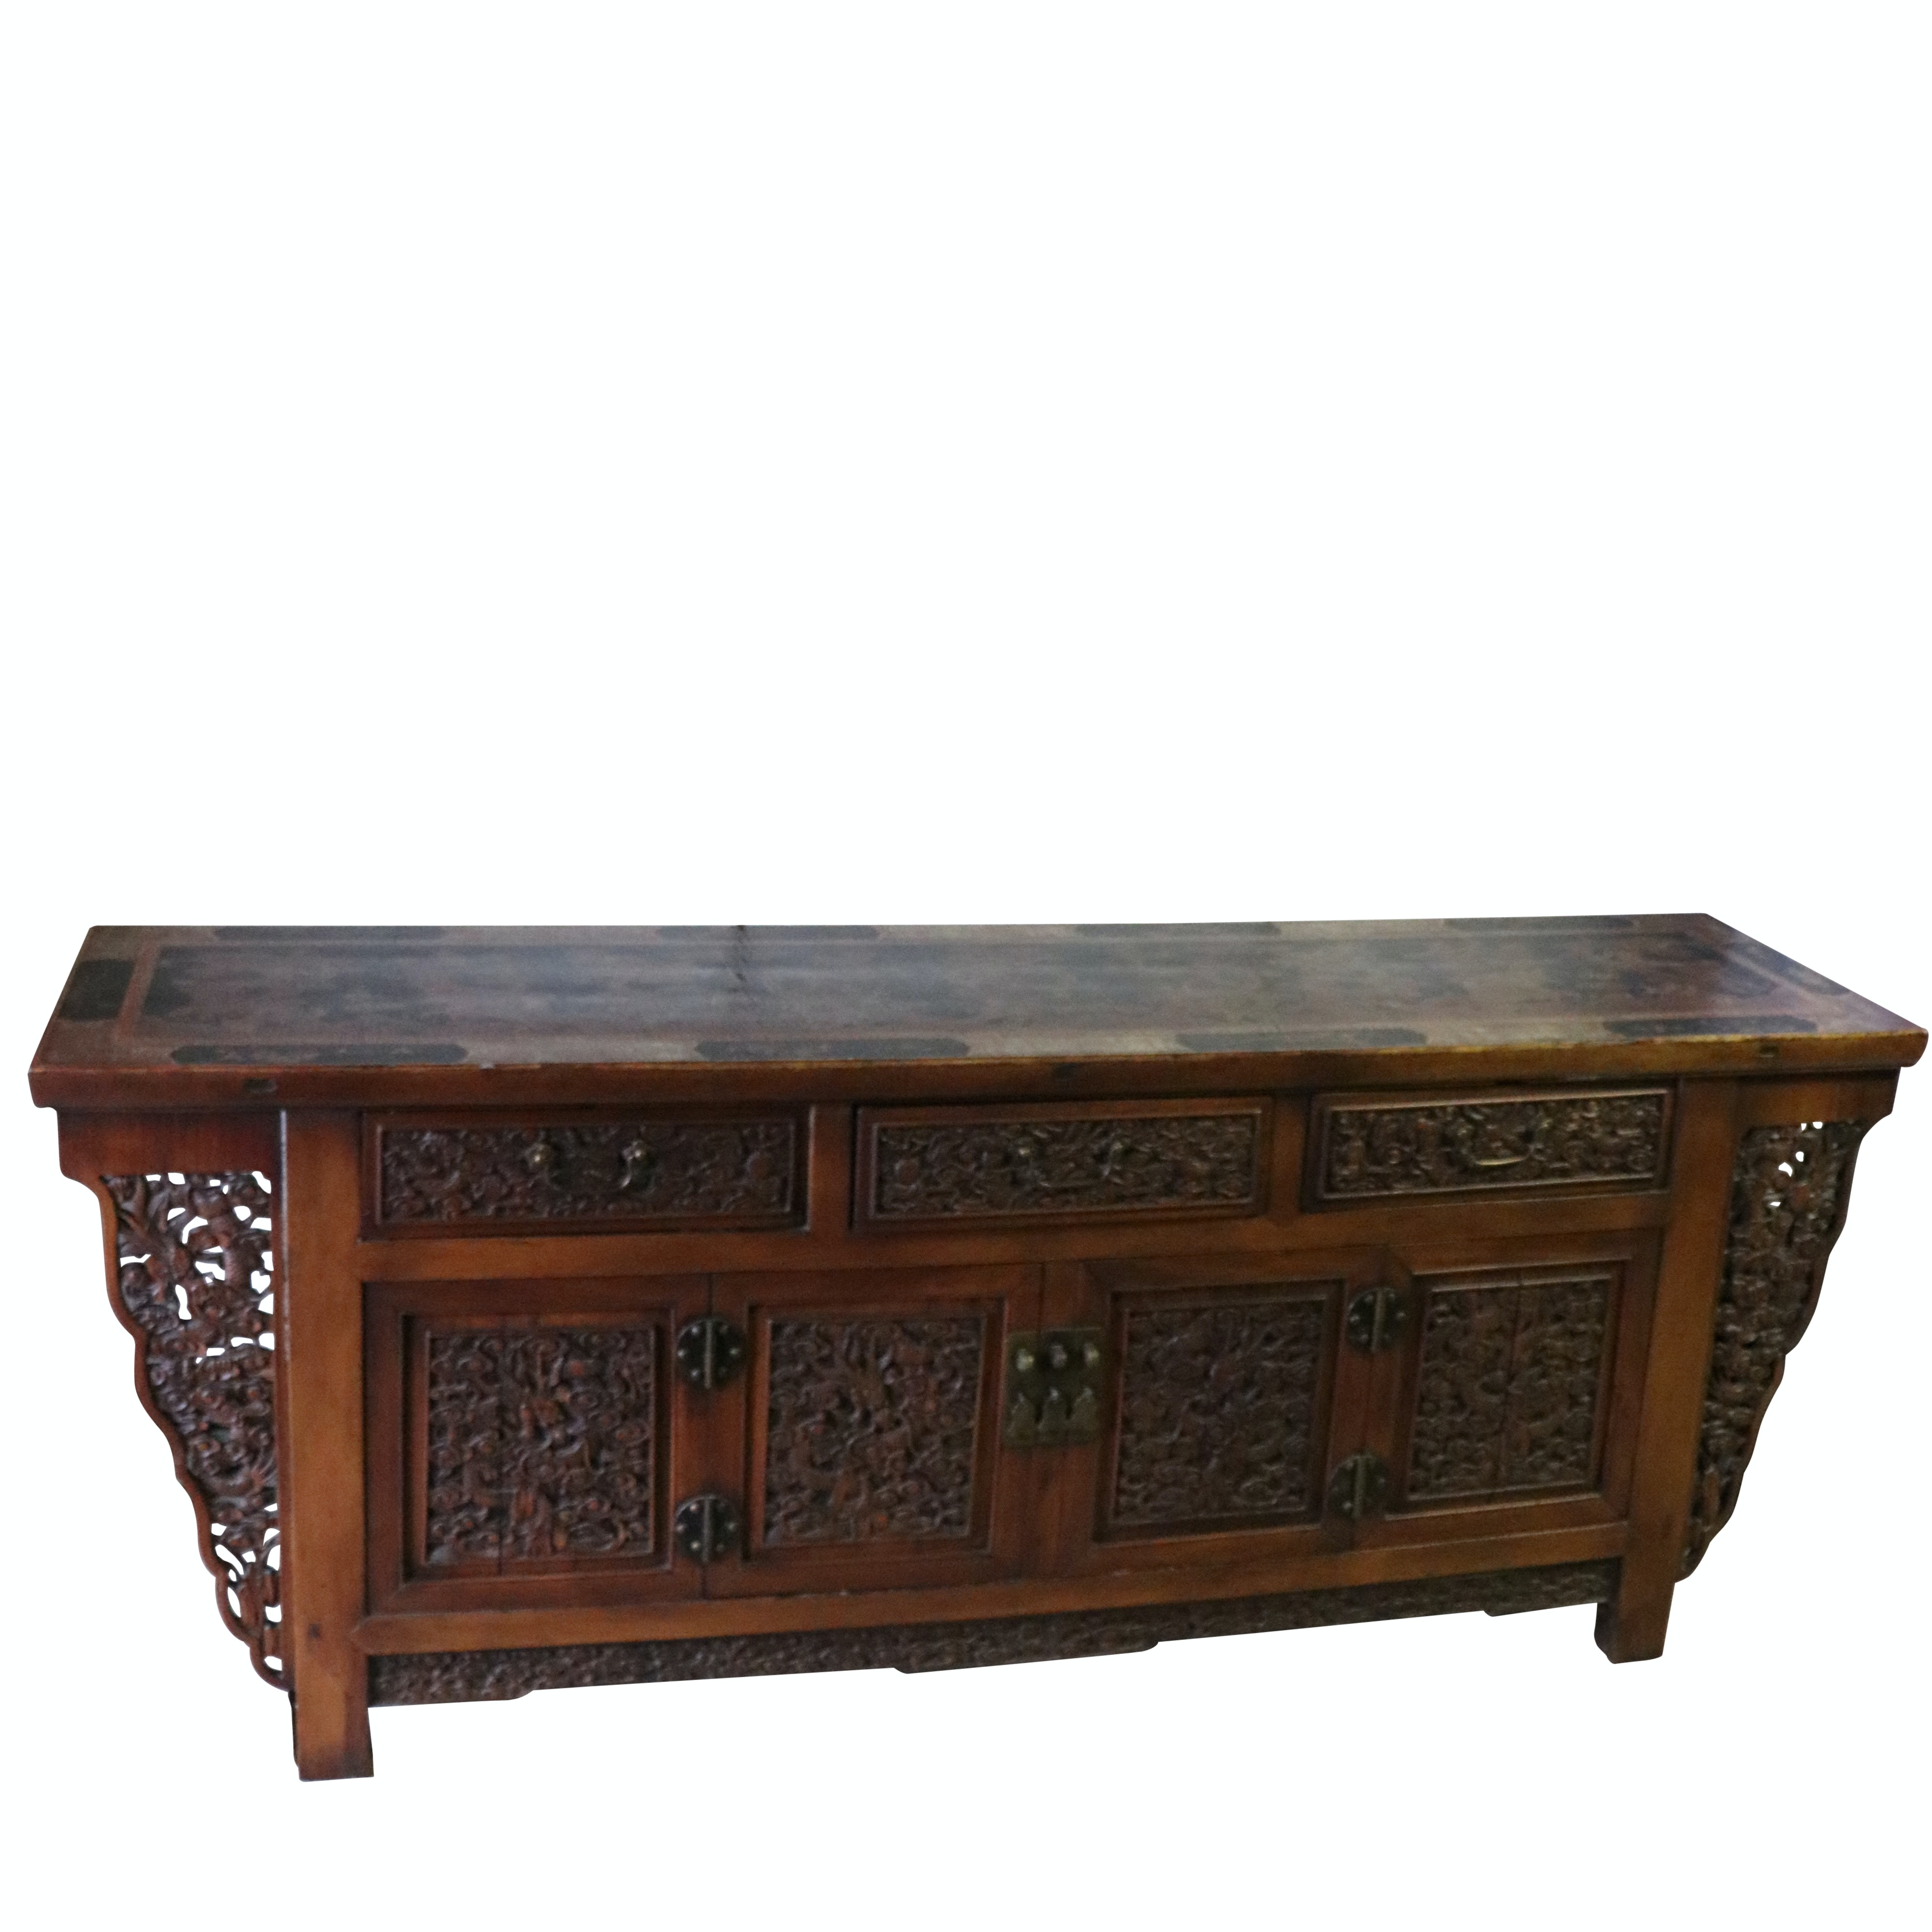 Chinese Vintage Carved and Hand-Painted Credenza